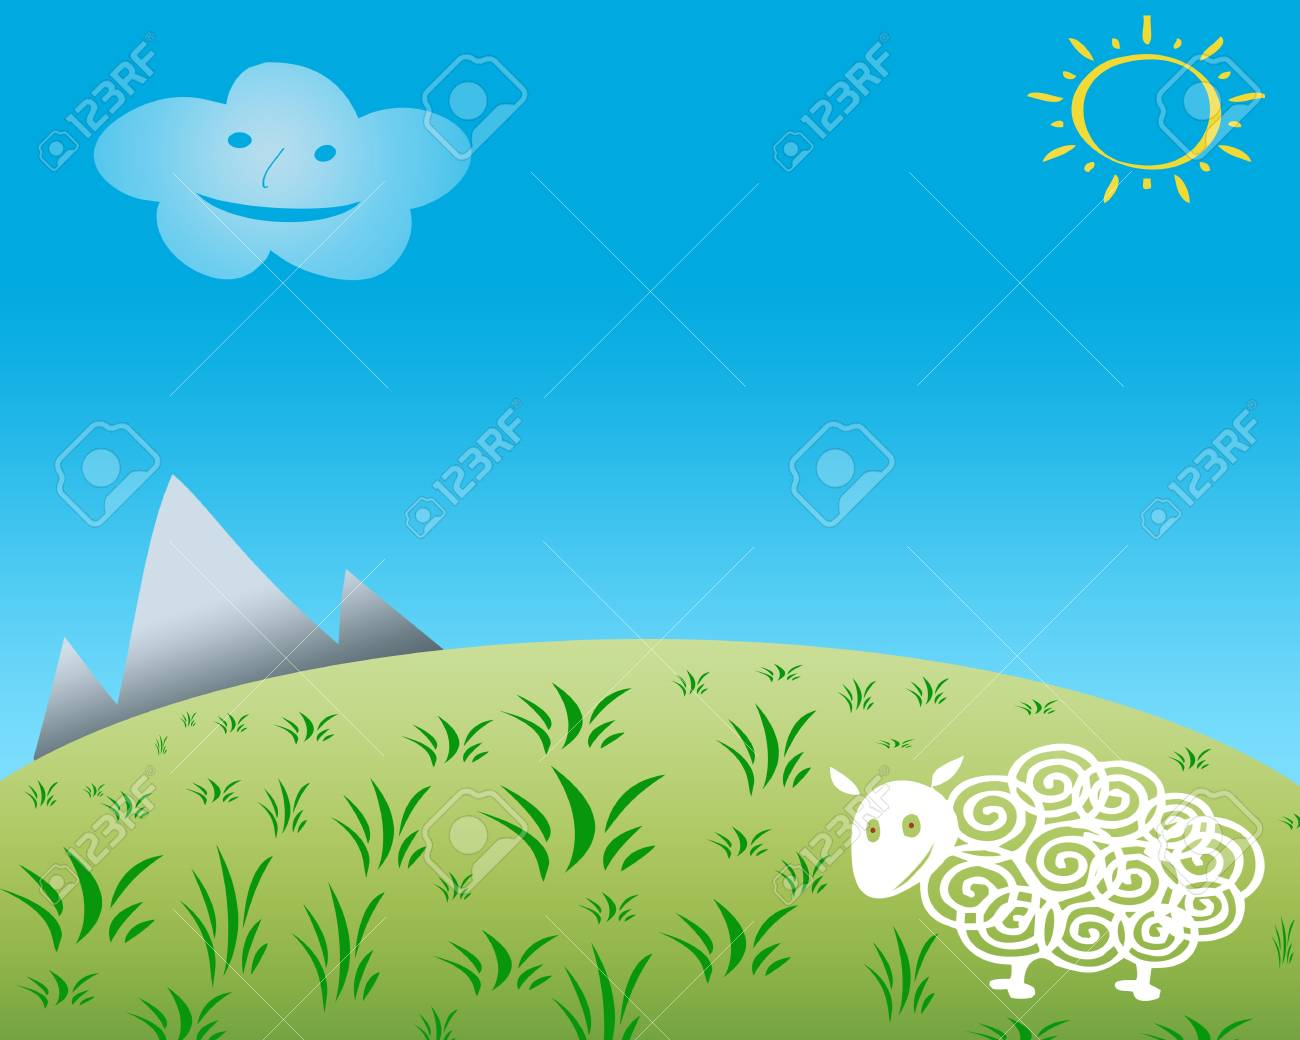 1300x1040 Child Drawing Of Happy Sheep On Grass Field With Blue Smiling